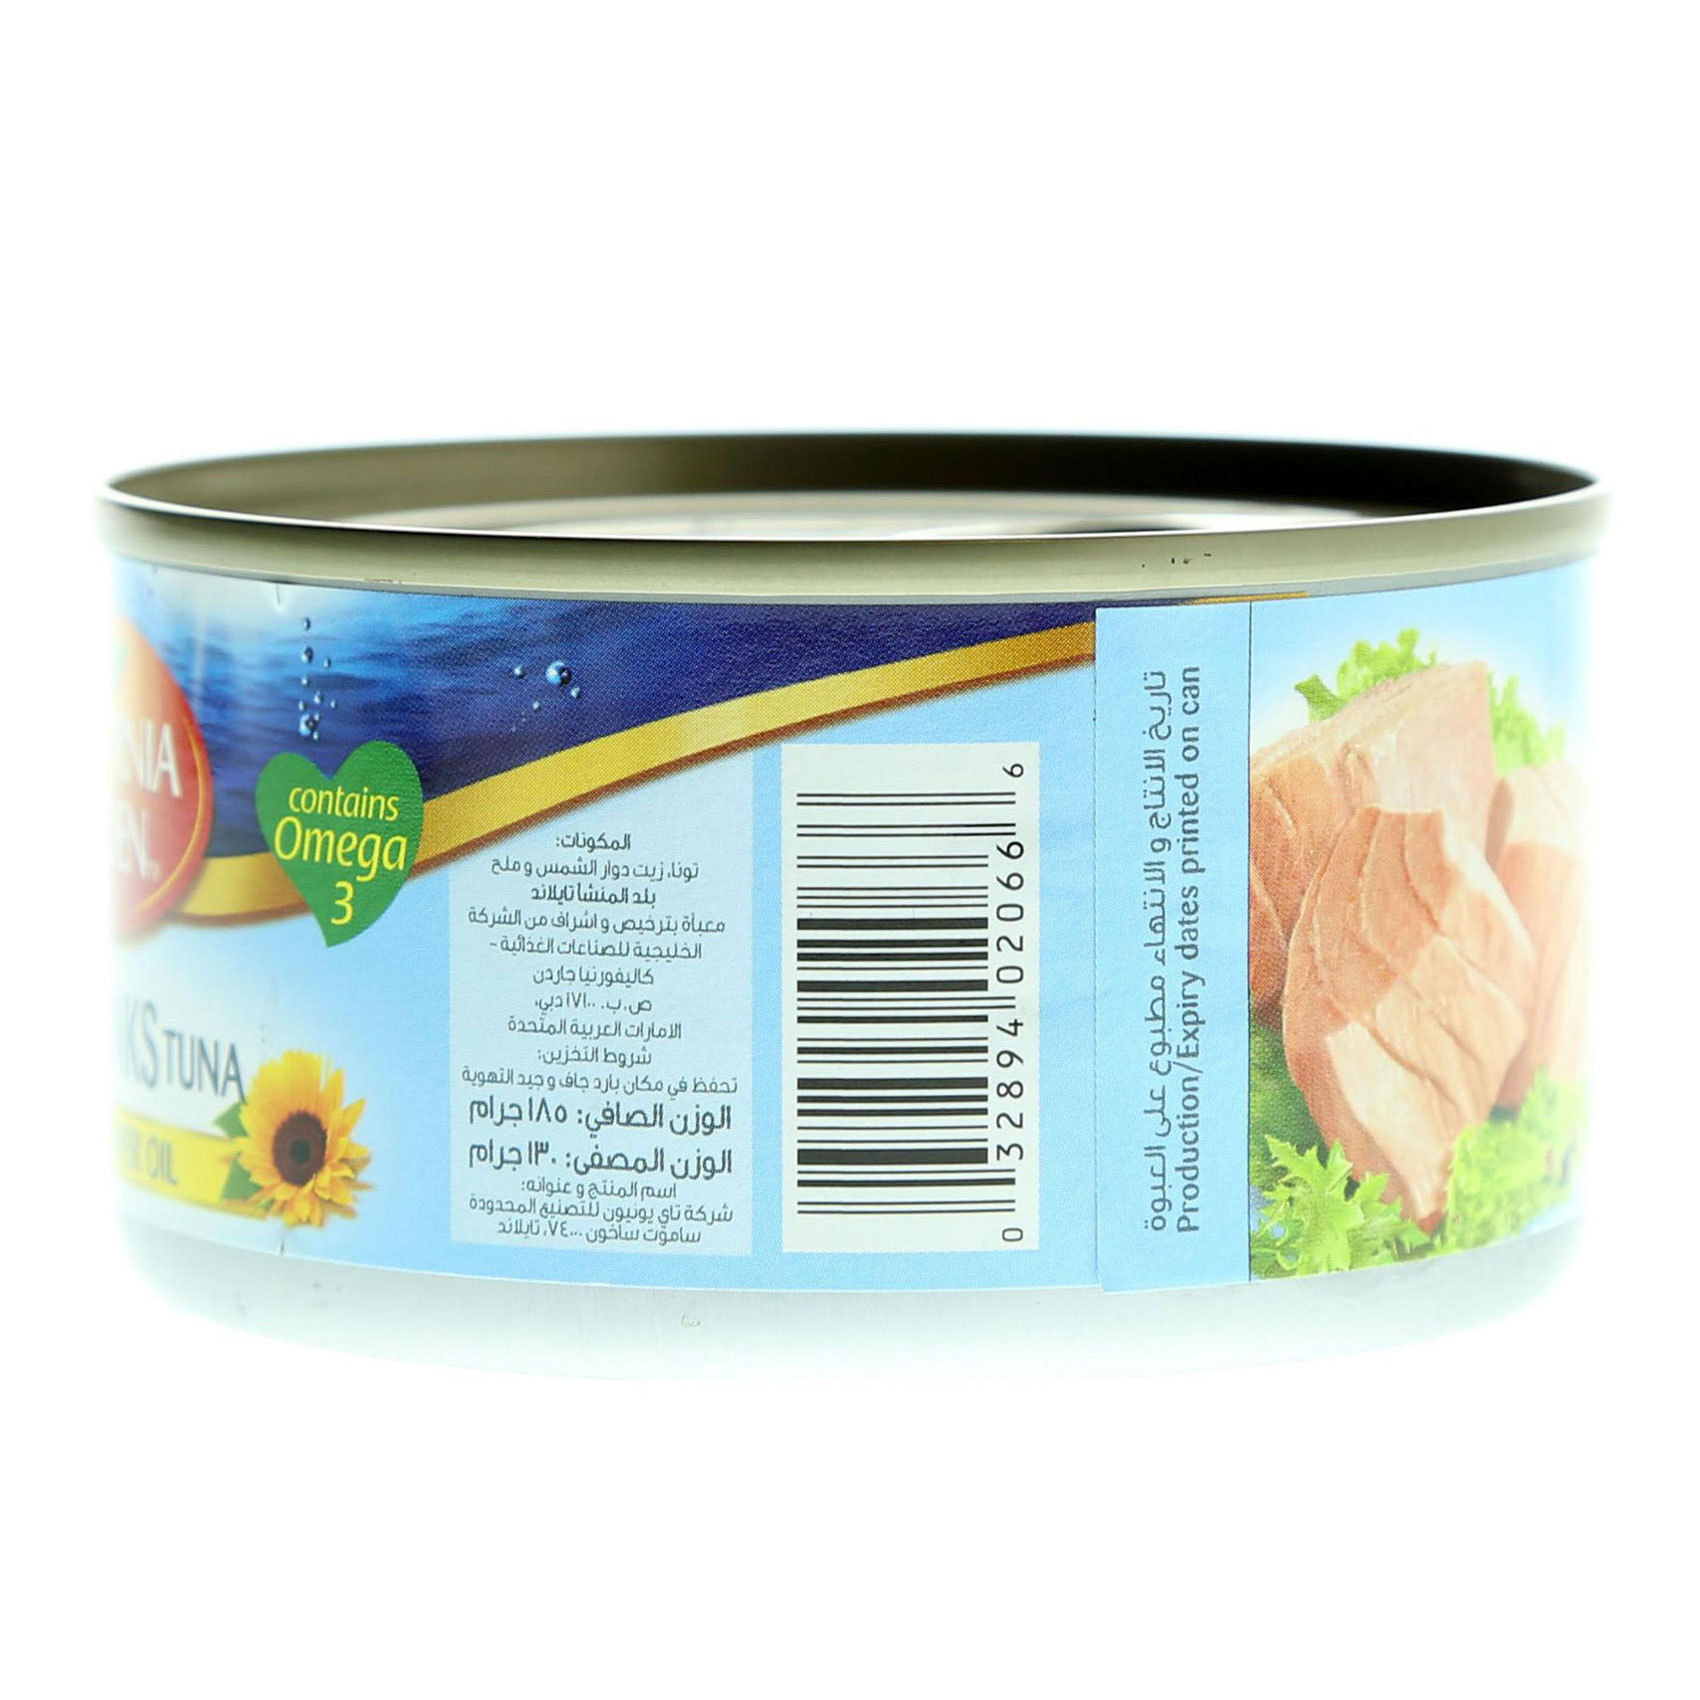 CALIFORNIA G TUNA MEAT OIL 185G